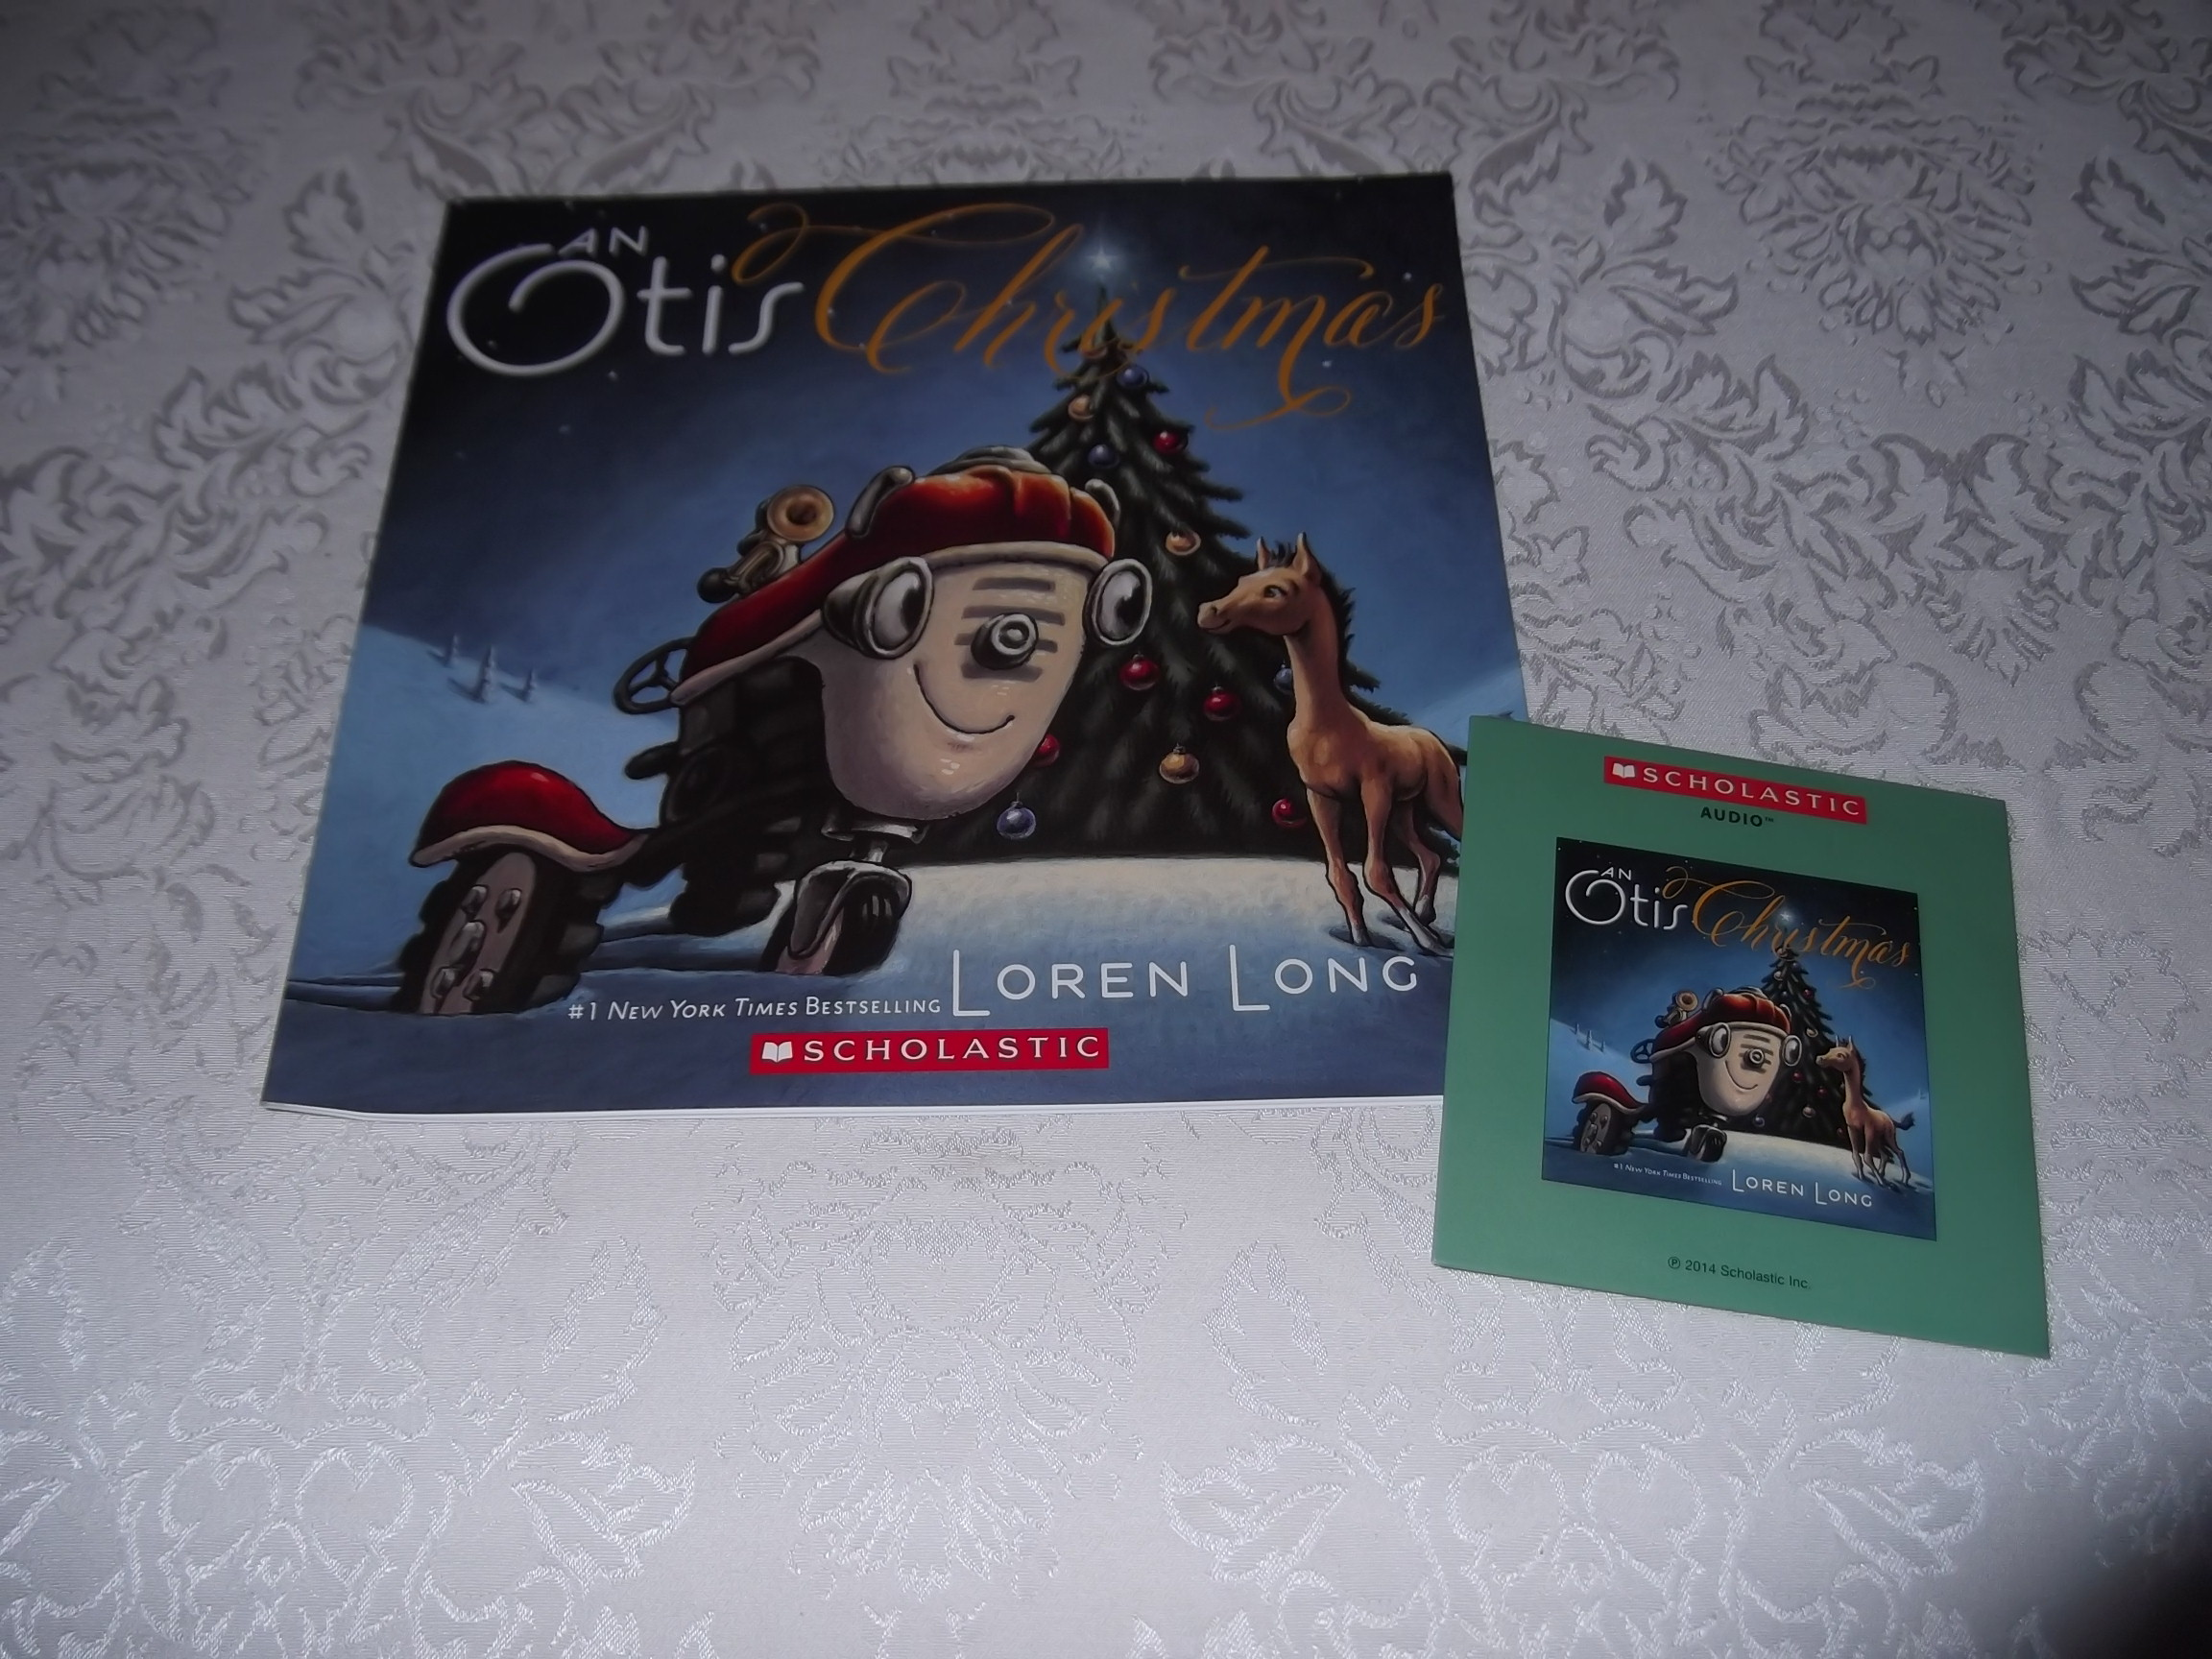 An Otis Christmas Loren Long Brand New Audio CD and Softcover